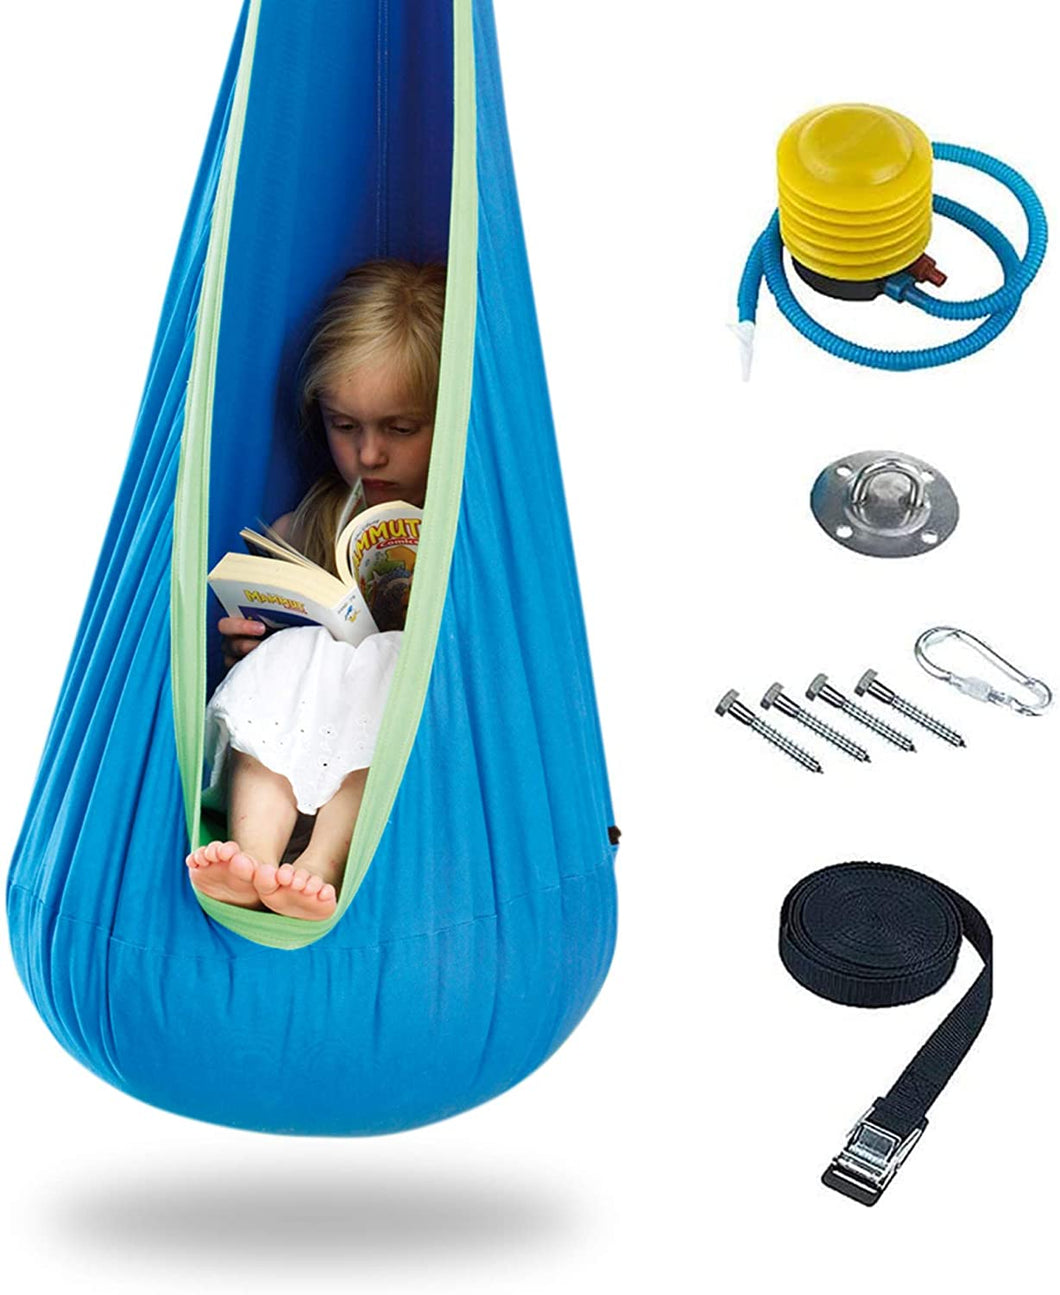 Kids Sensory Swing Pod Chair